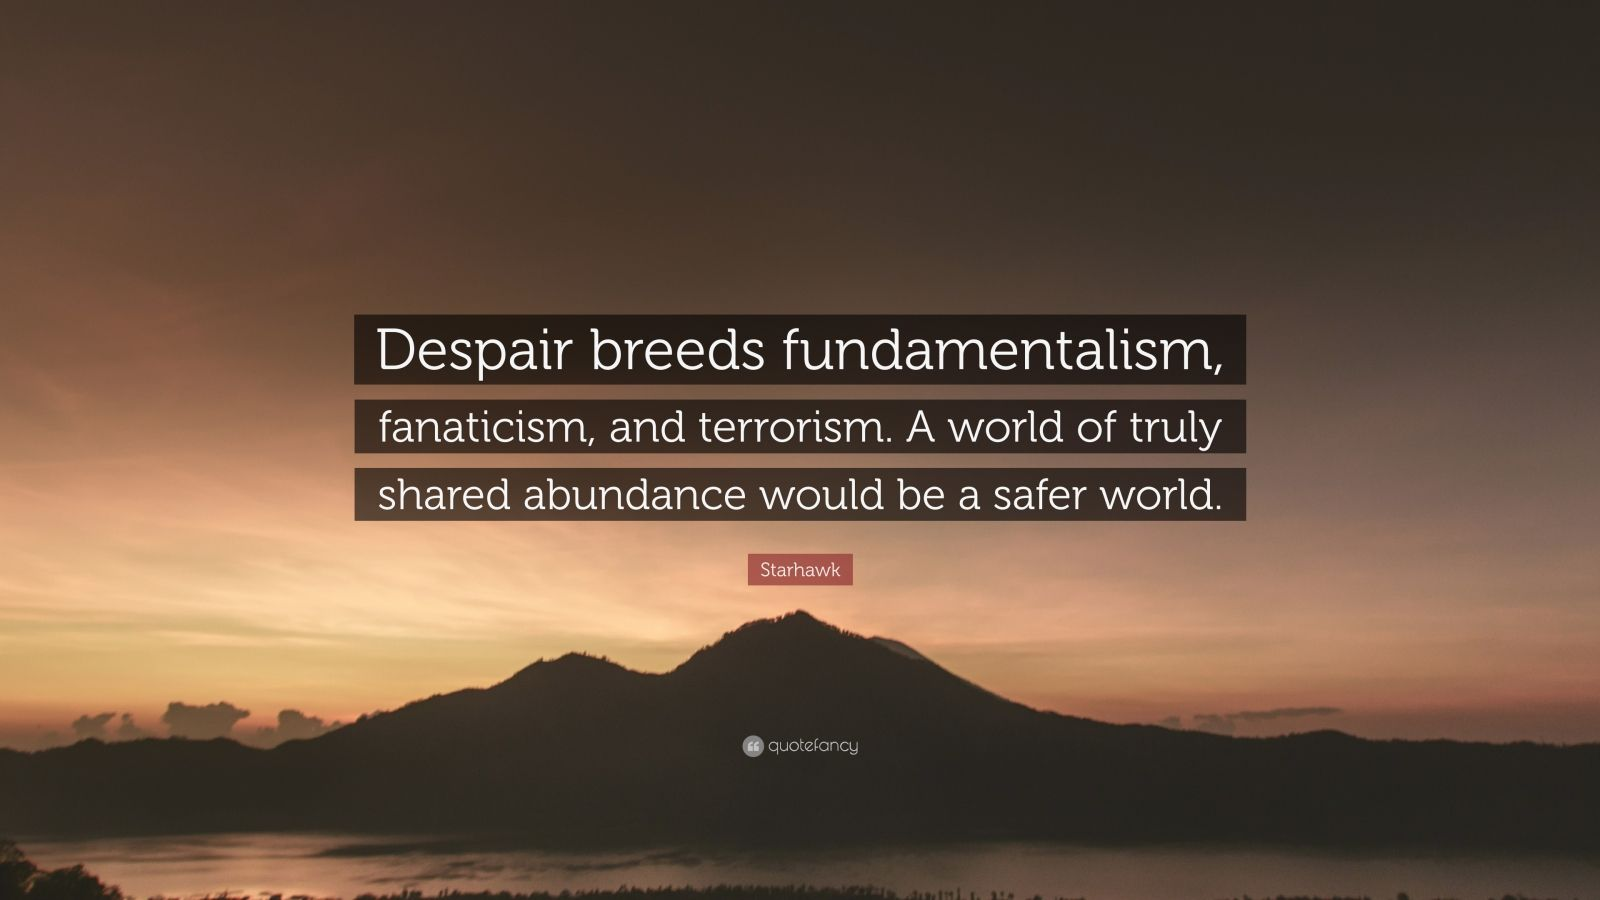 """Starhawk Quote: """"Despair breeds fundamentalism, fanaticism, and terrorism. A world of truly shared abundance would be a safer world."""""""